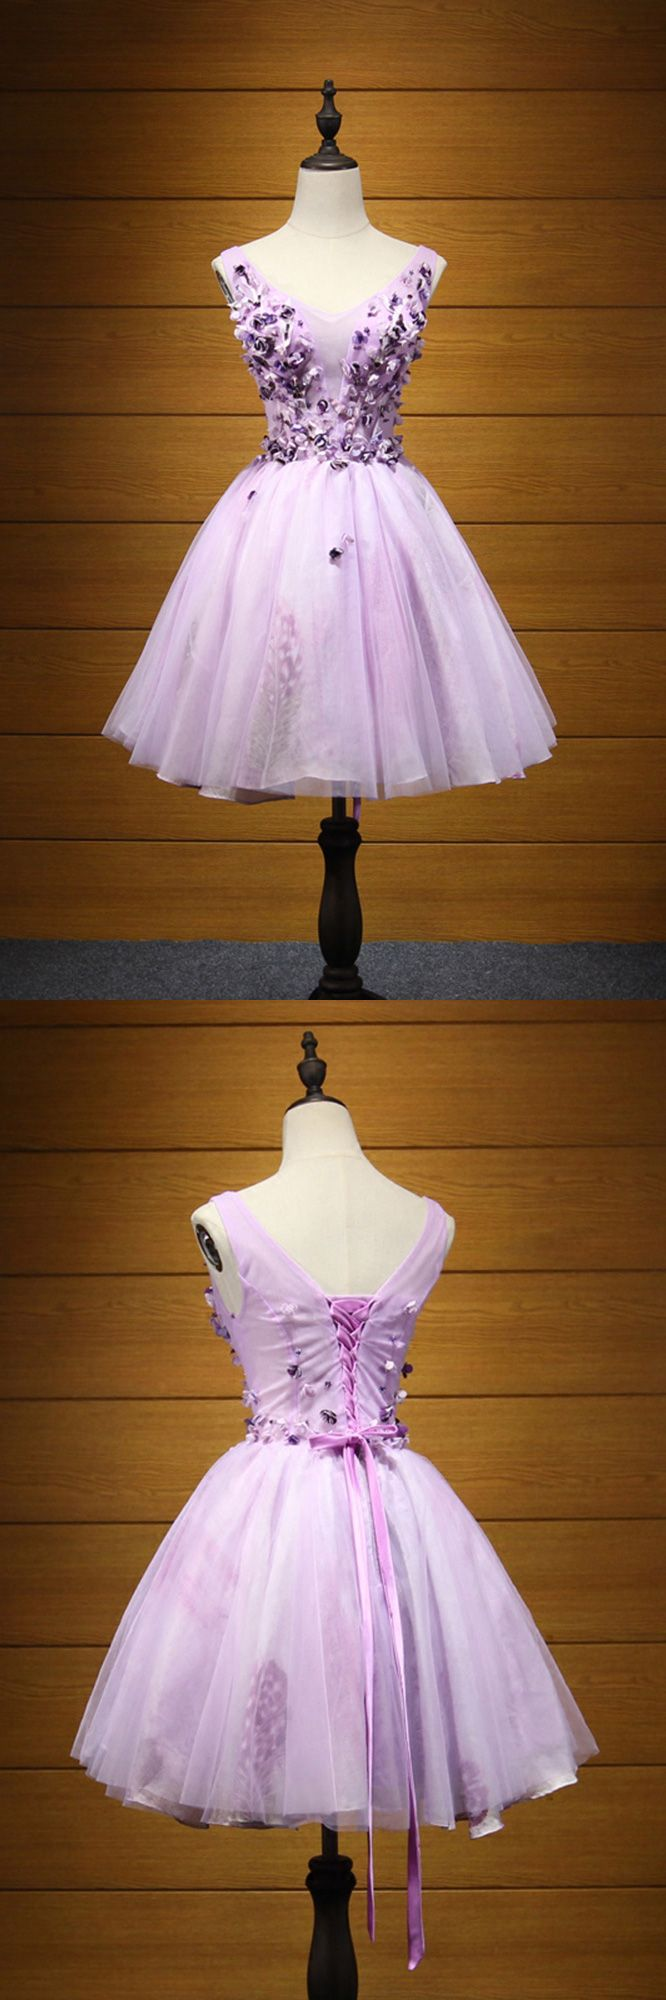 Only $149, Cute Lilac Floral Homecoming Prom Dress Short With Straps For Juniors #AKE18183 at #SheProm. SheProm is an online store with thousands of dresses, range from Prom,Homecoming,Graduation,Purple,A Line Dresses,Floral Dresses,Short Dresses,Customizable Dresses and so on. Not only selling formal dresses, more and more trendy dress styles will be updated daily to our store. With low price and high quality guaranteed, you will definitely like shopping from us.